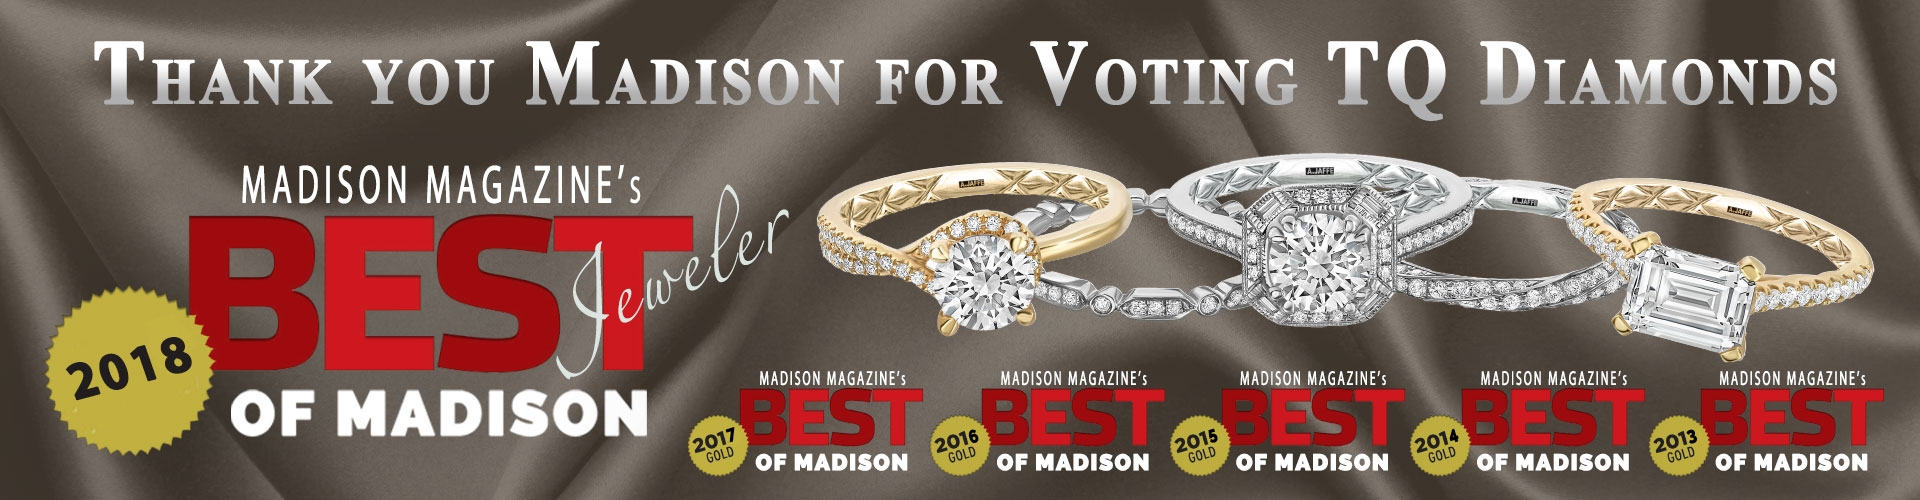 We Won - Best Jeweler of Madison 2018